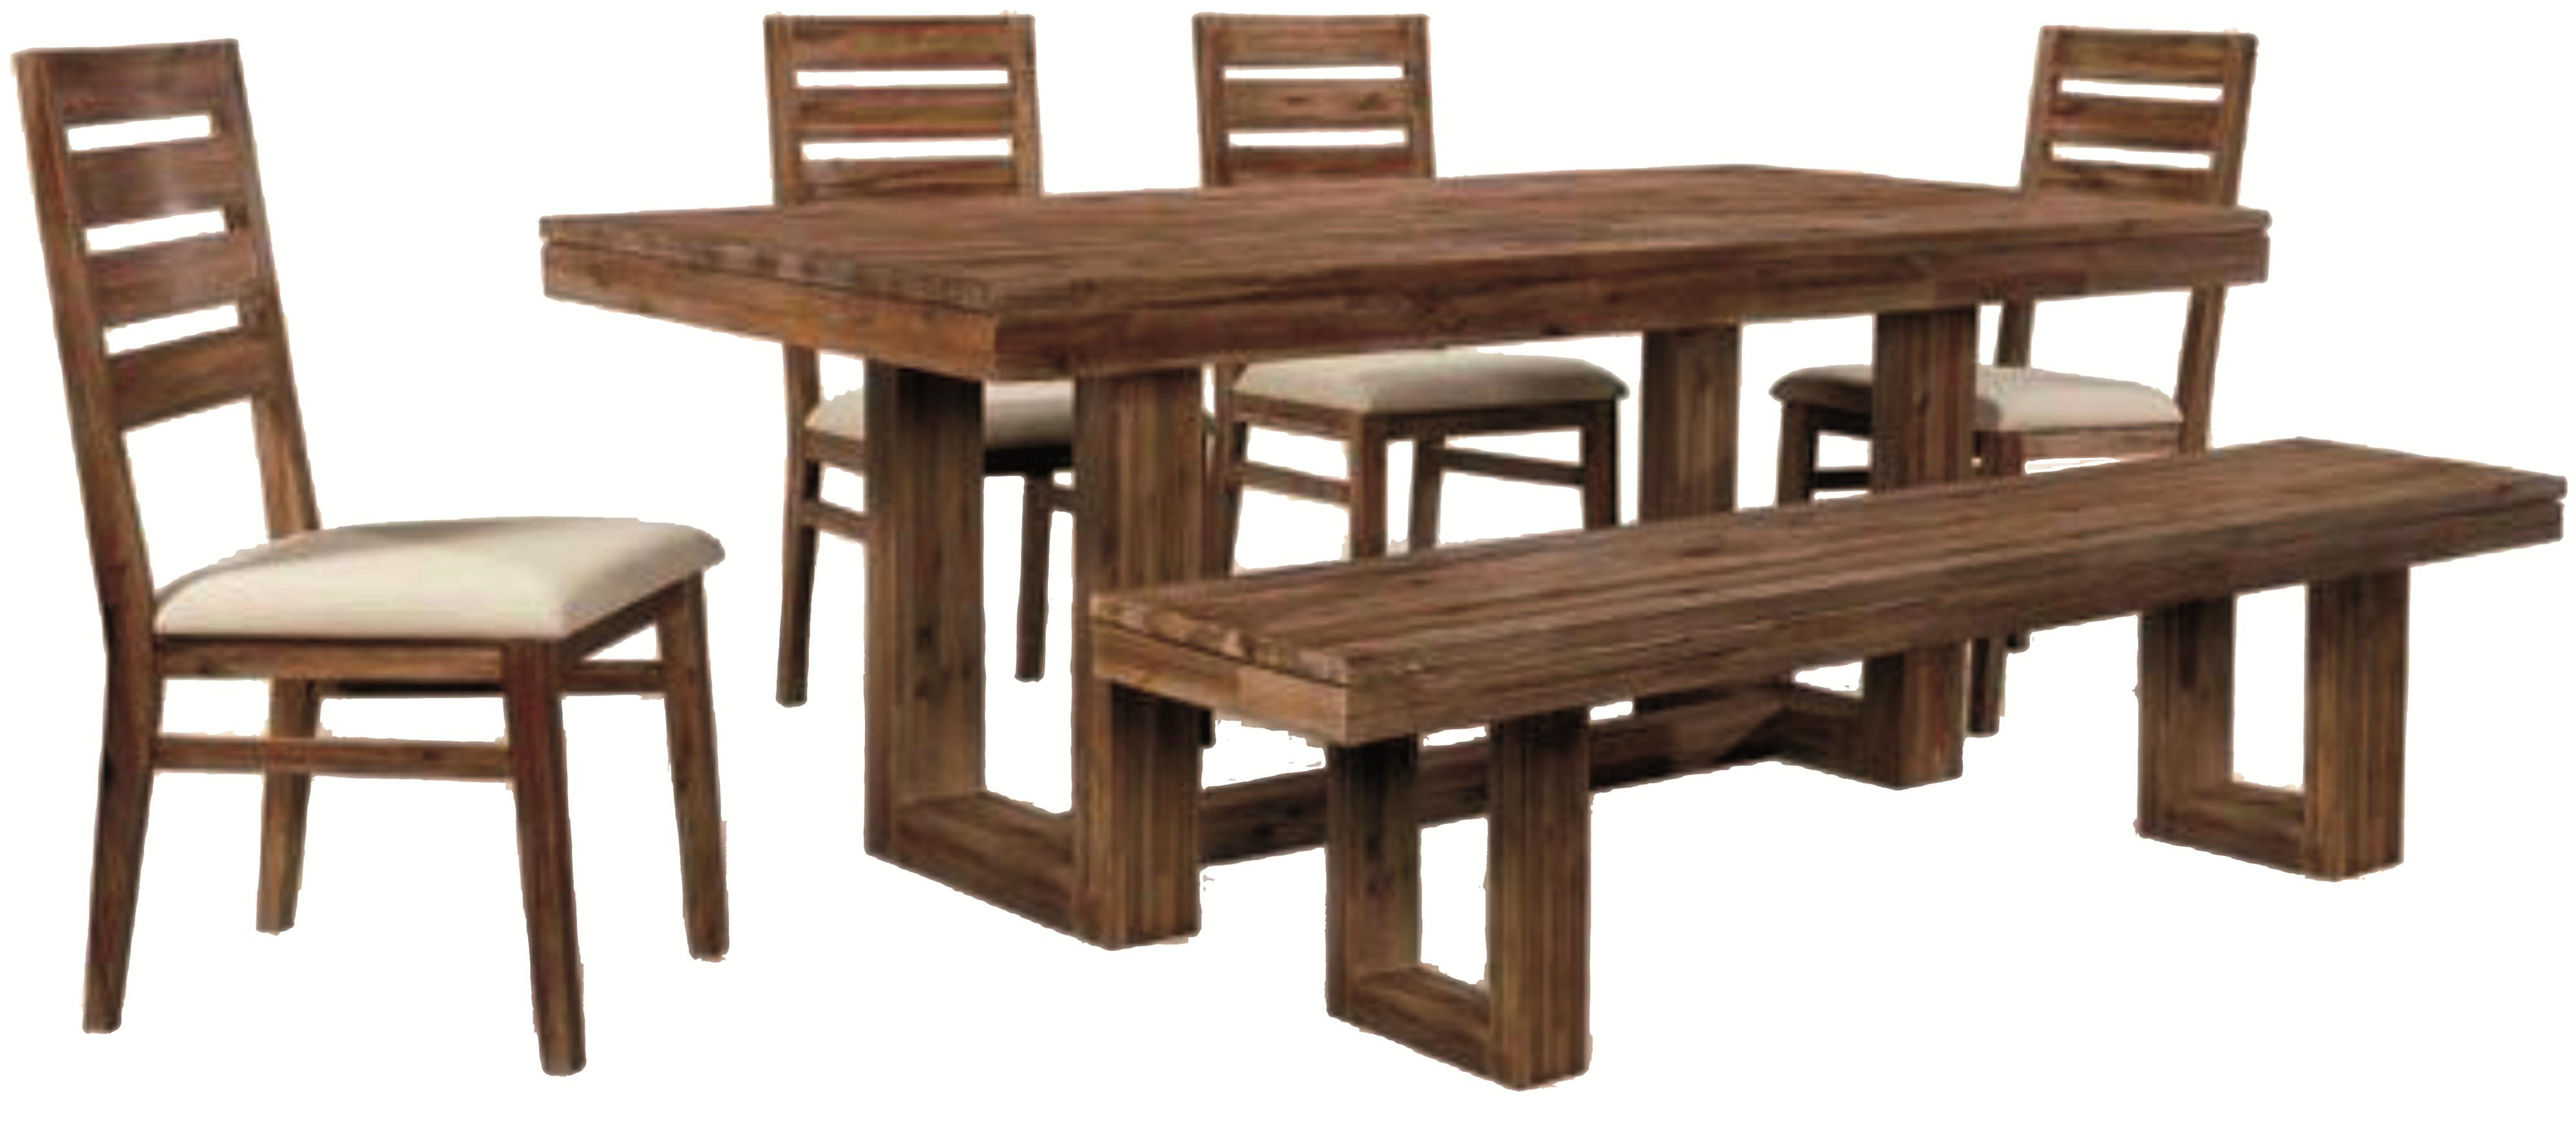 Six Piece Modern Rustic Rectangular Trestle Table With Ladderback Side Chairs Dining Bench Set